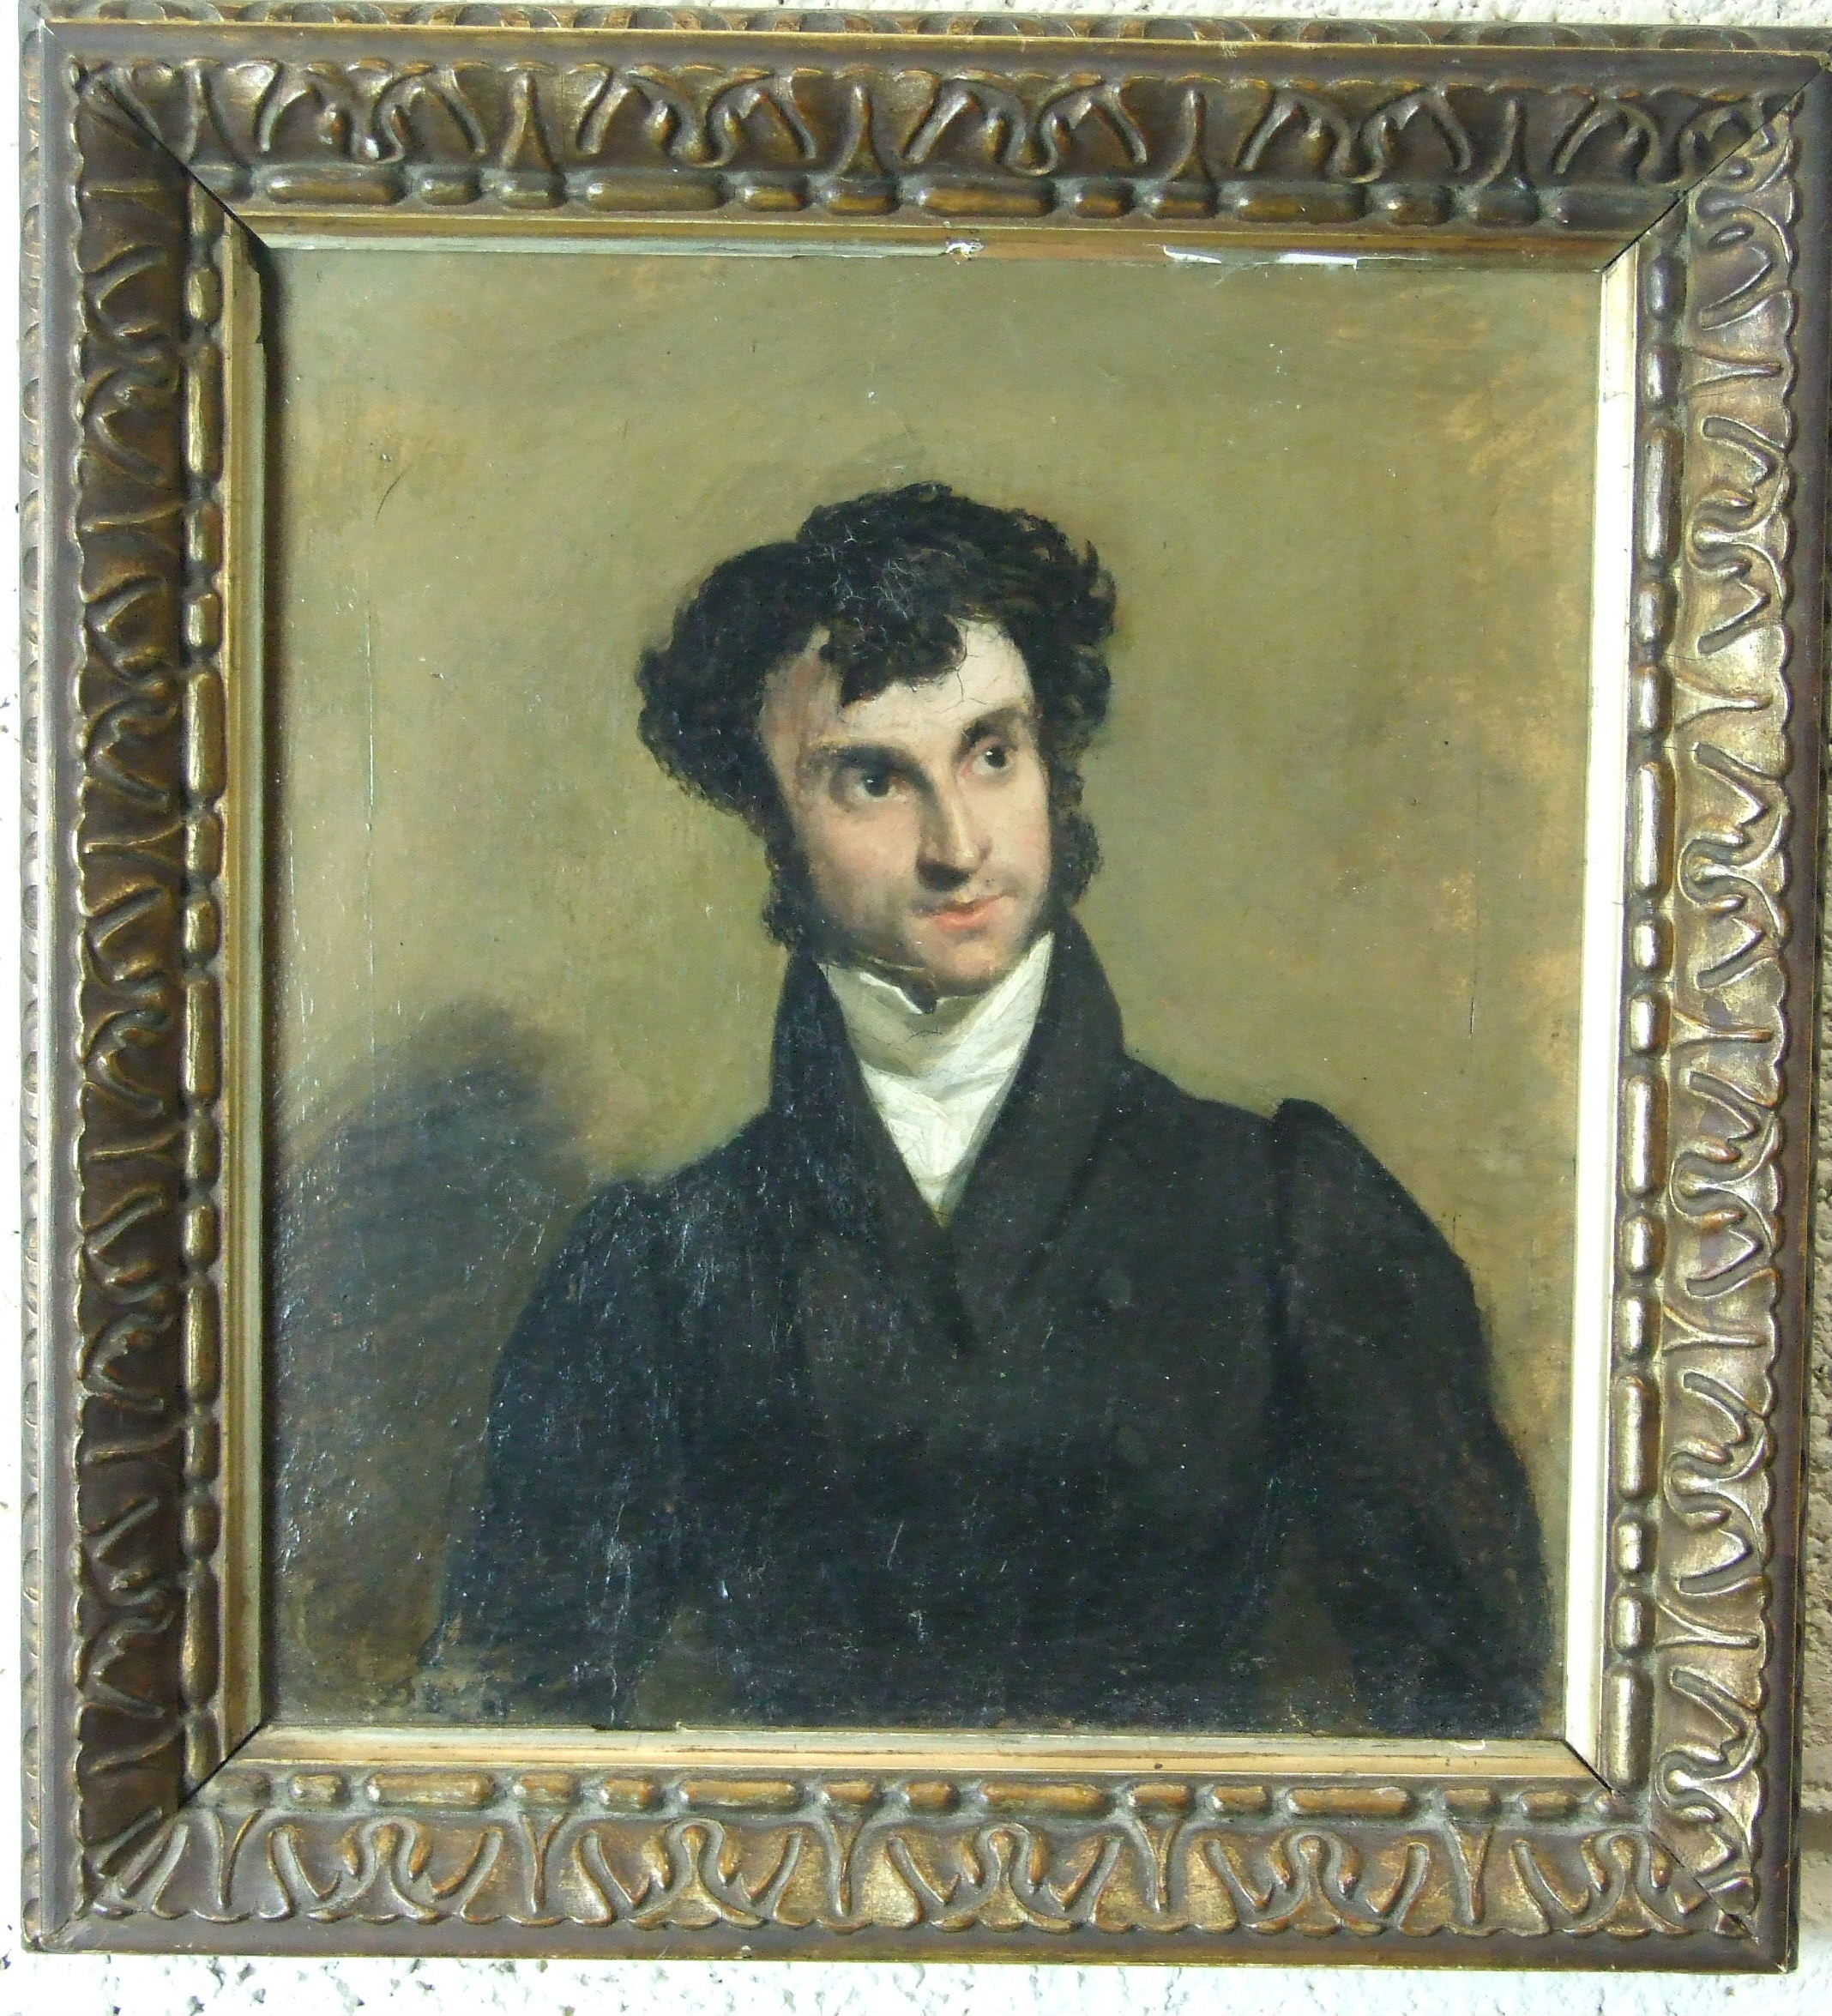 Lot 1 - 19th century English School PORTRAIT OF HARRY HATTON, DRESSED IN A DARK COAT AND WHITE STOCK